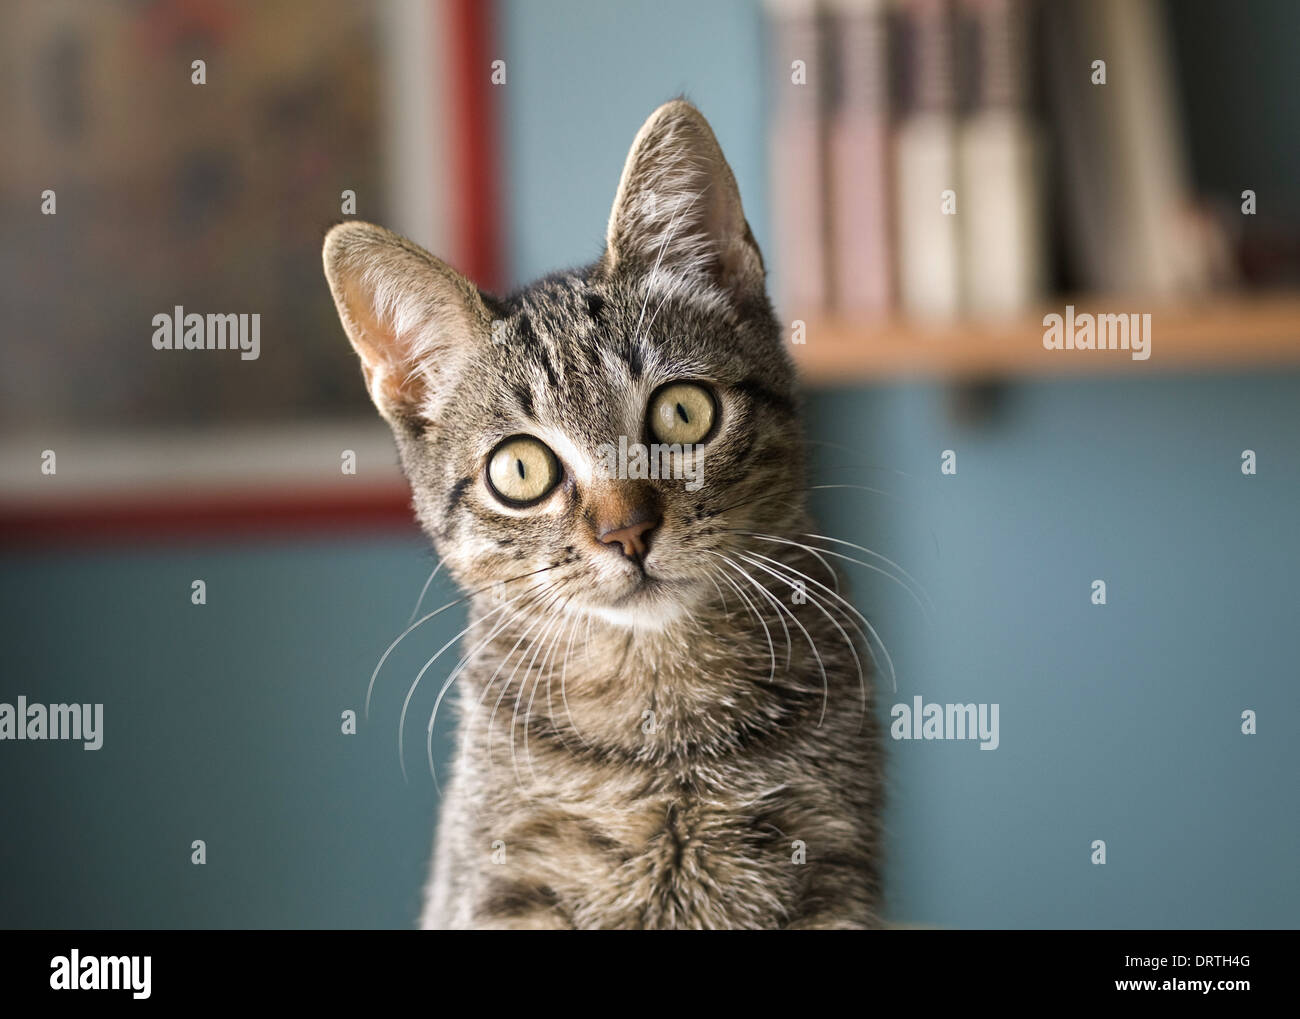 Cat with head tilted indoors. Cat is looking at camera. - Stock Image